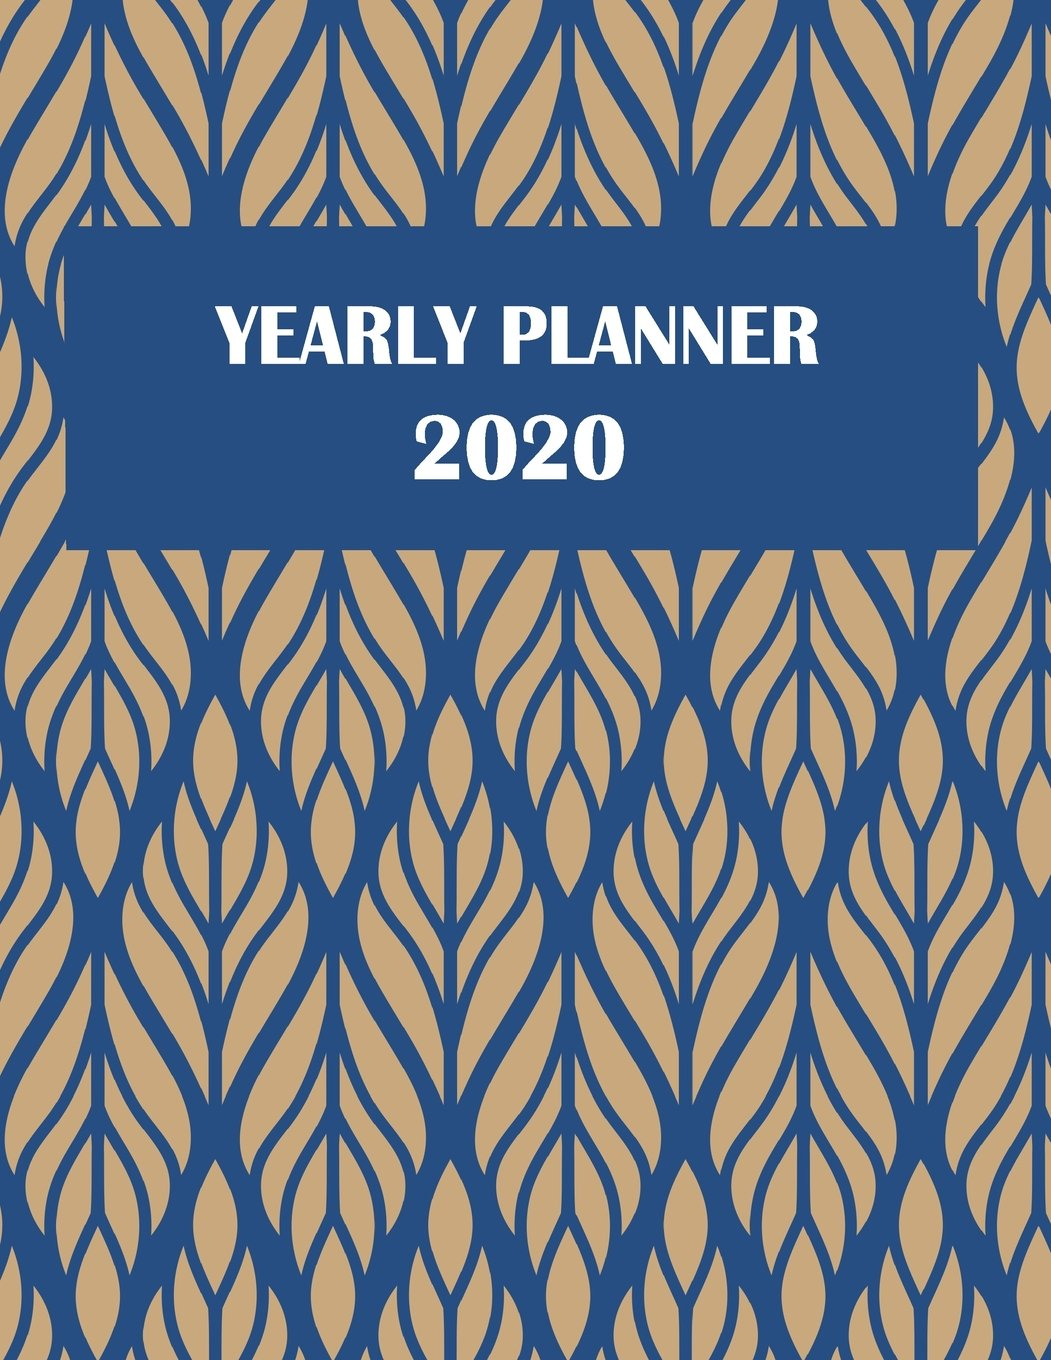 Yearly Planner 2020: Classic Blue Art, Yearly Calendar Book ...